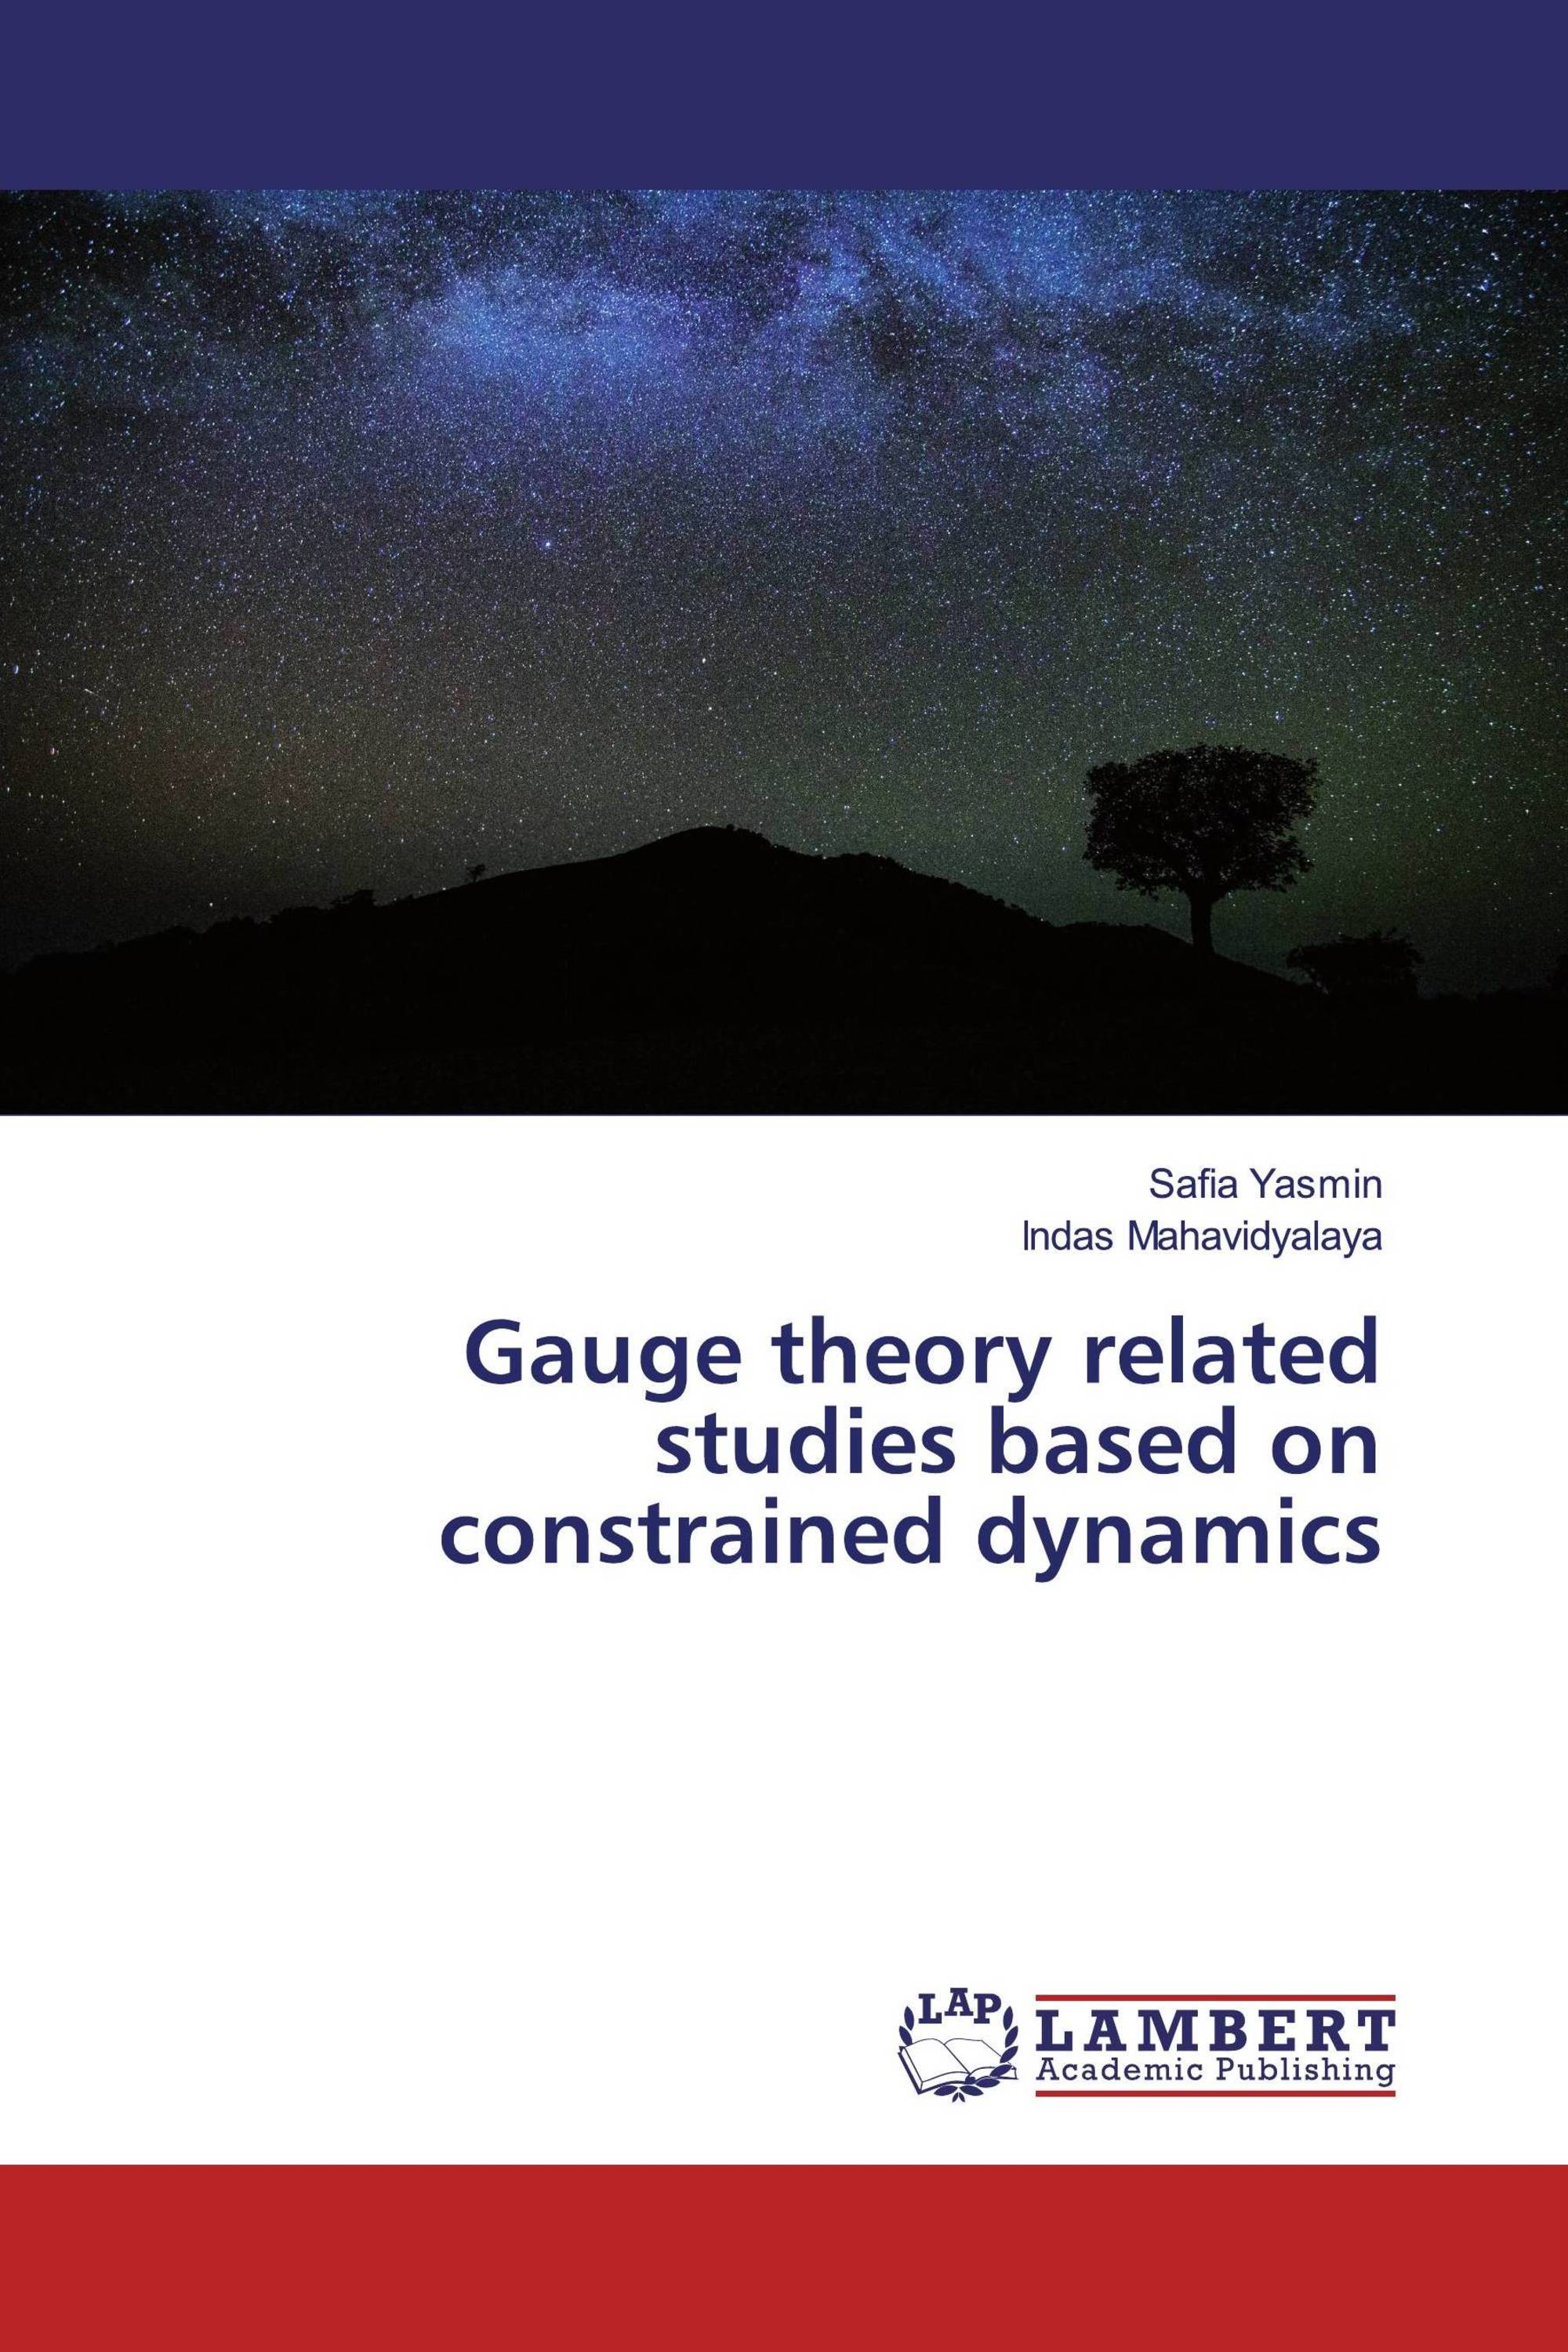 Gauge theory related studies based on constrained dynamics